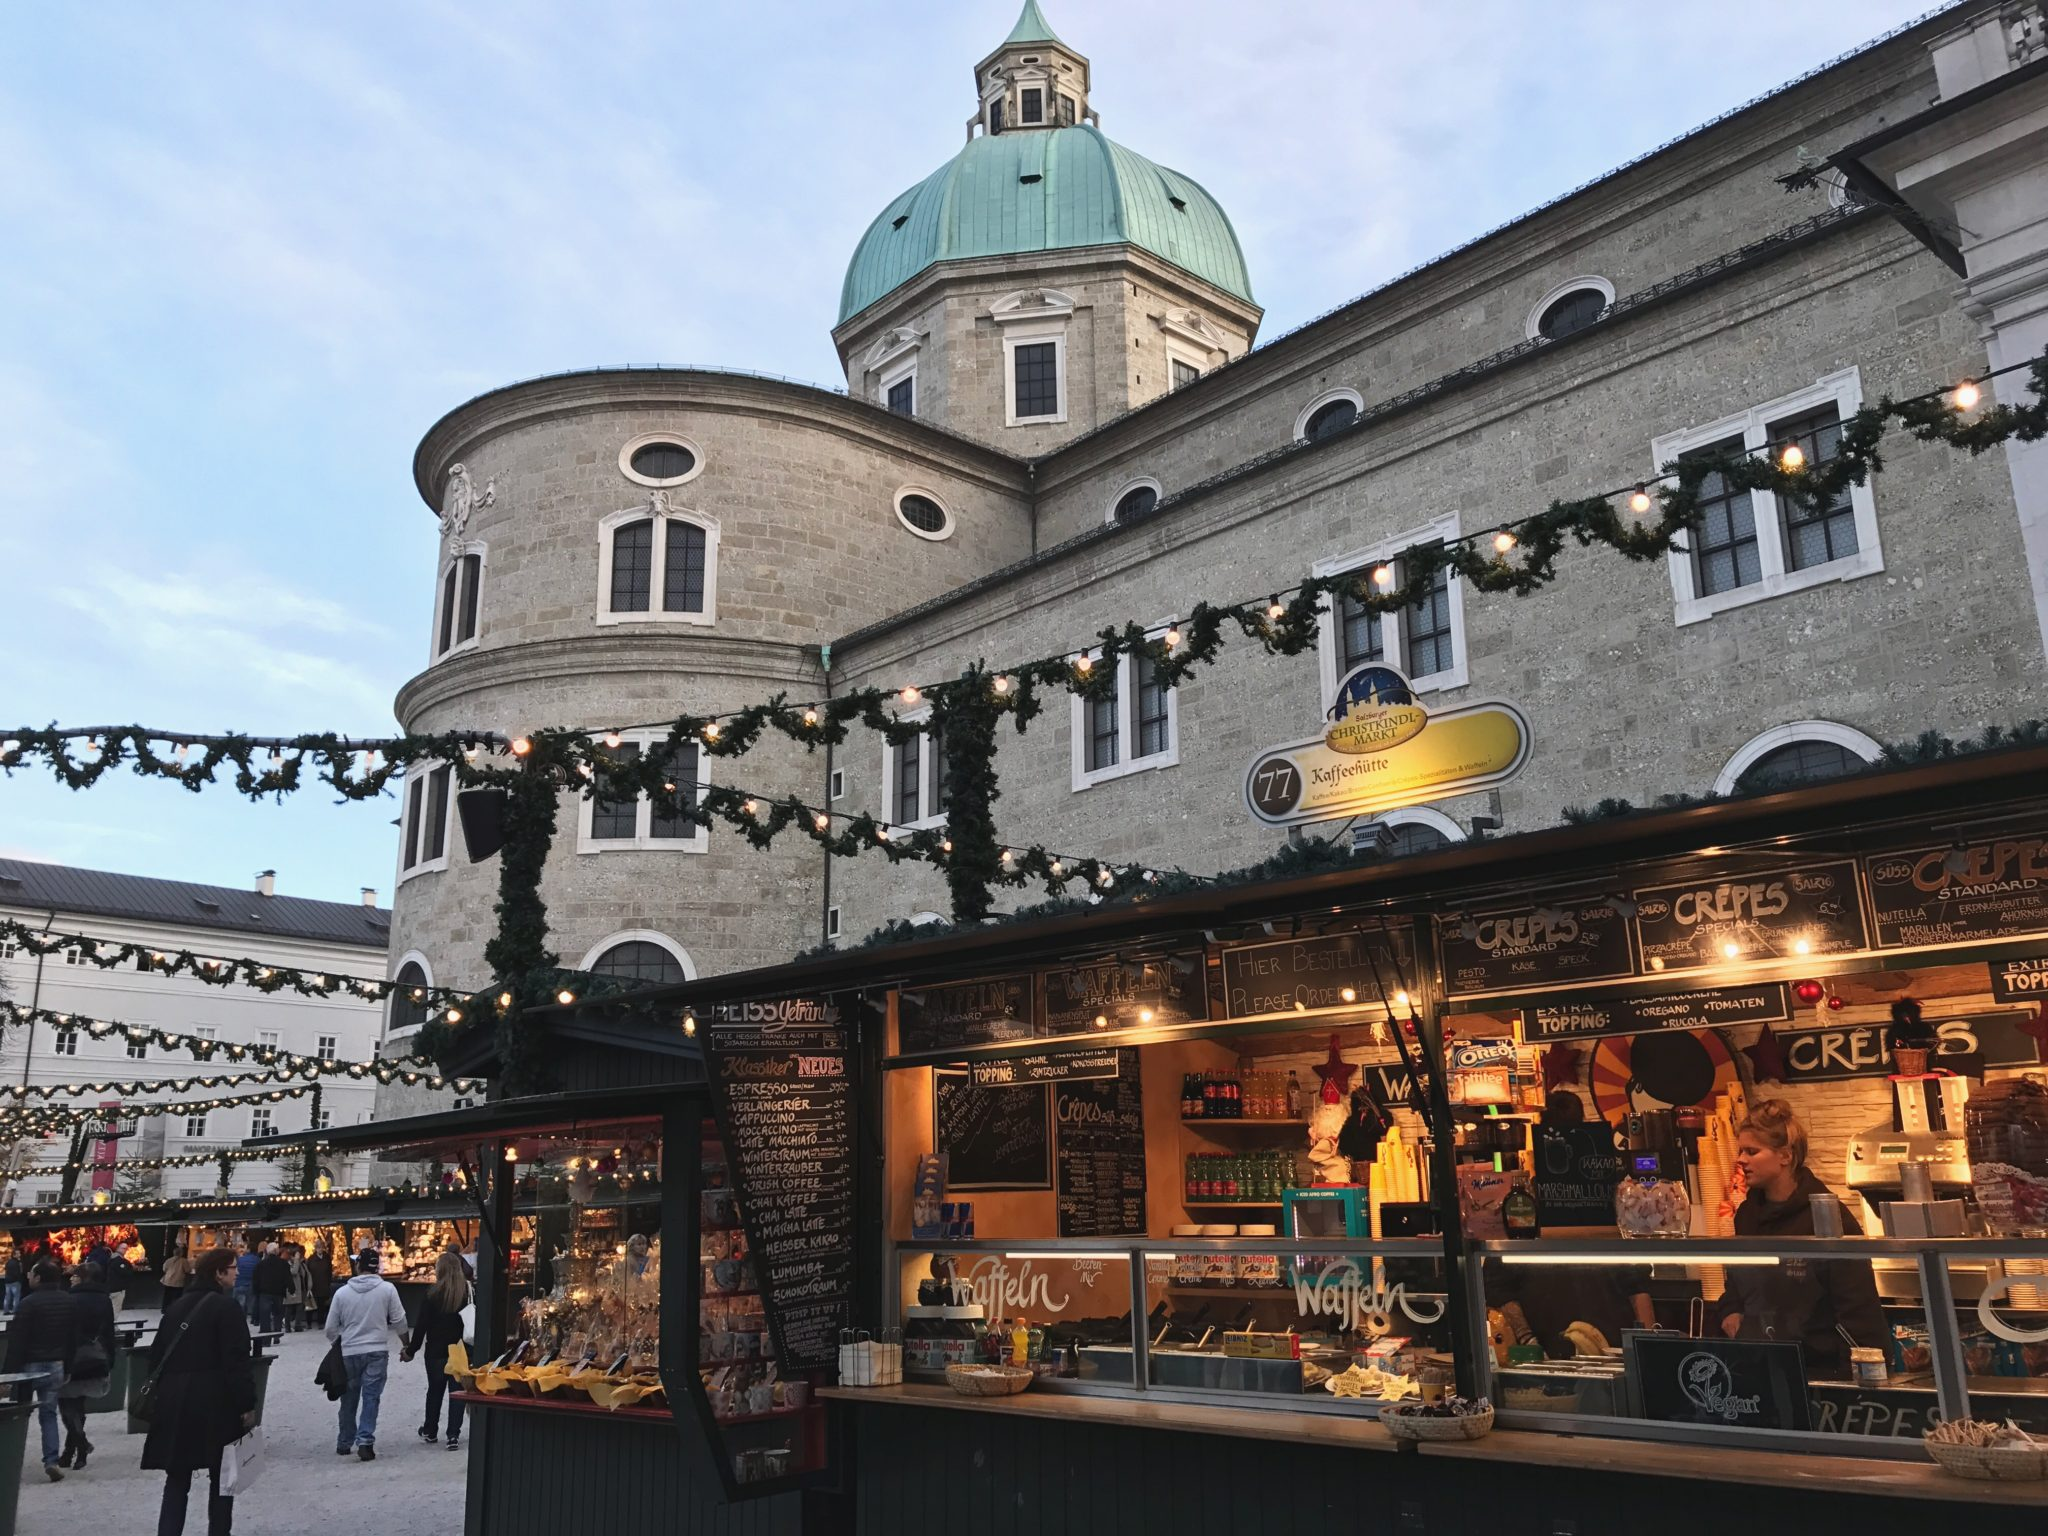 The Christmas Market Bucket List